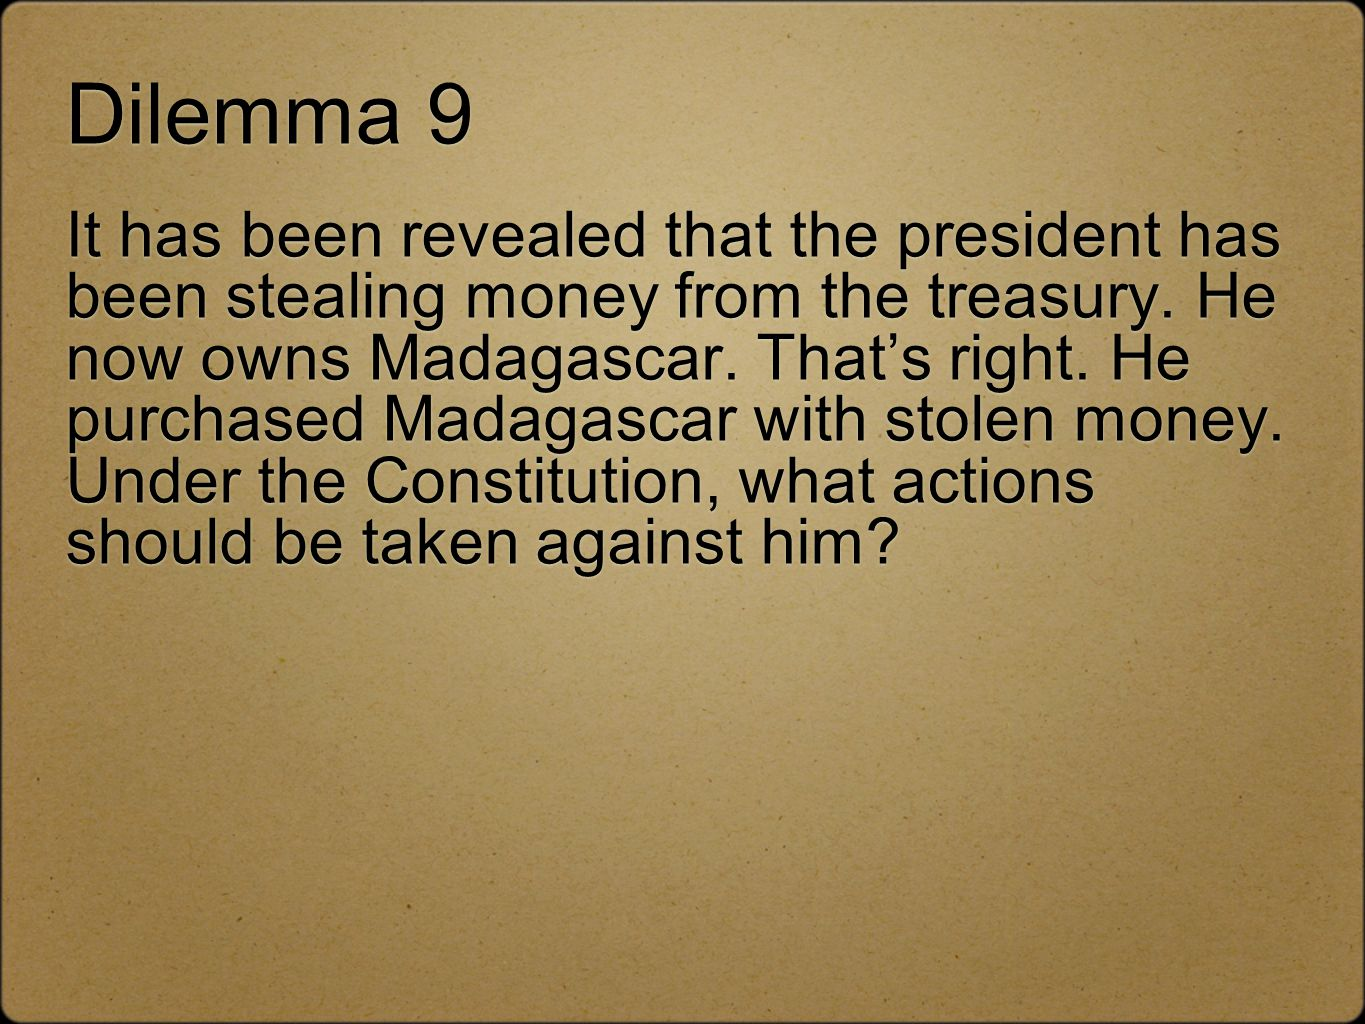 Dilemma 9 It has been revealed that the president has been stealing money from the treasury. He now owns Madagascar. Thats right. He purchased Madagas